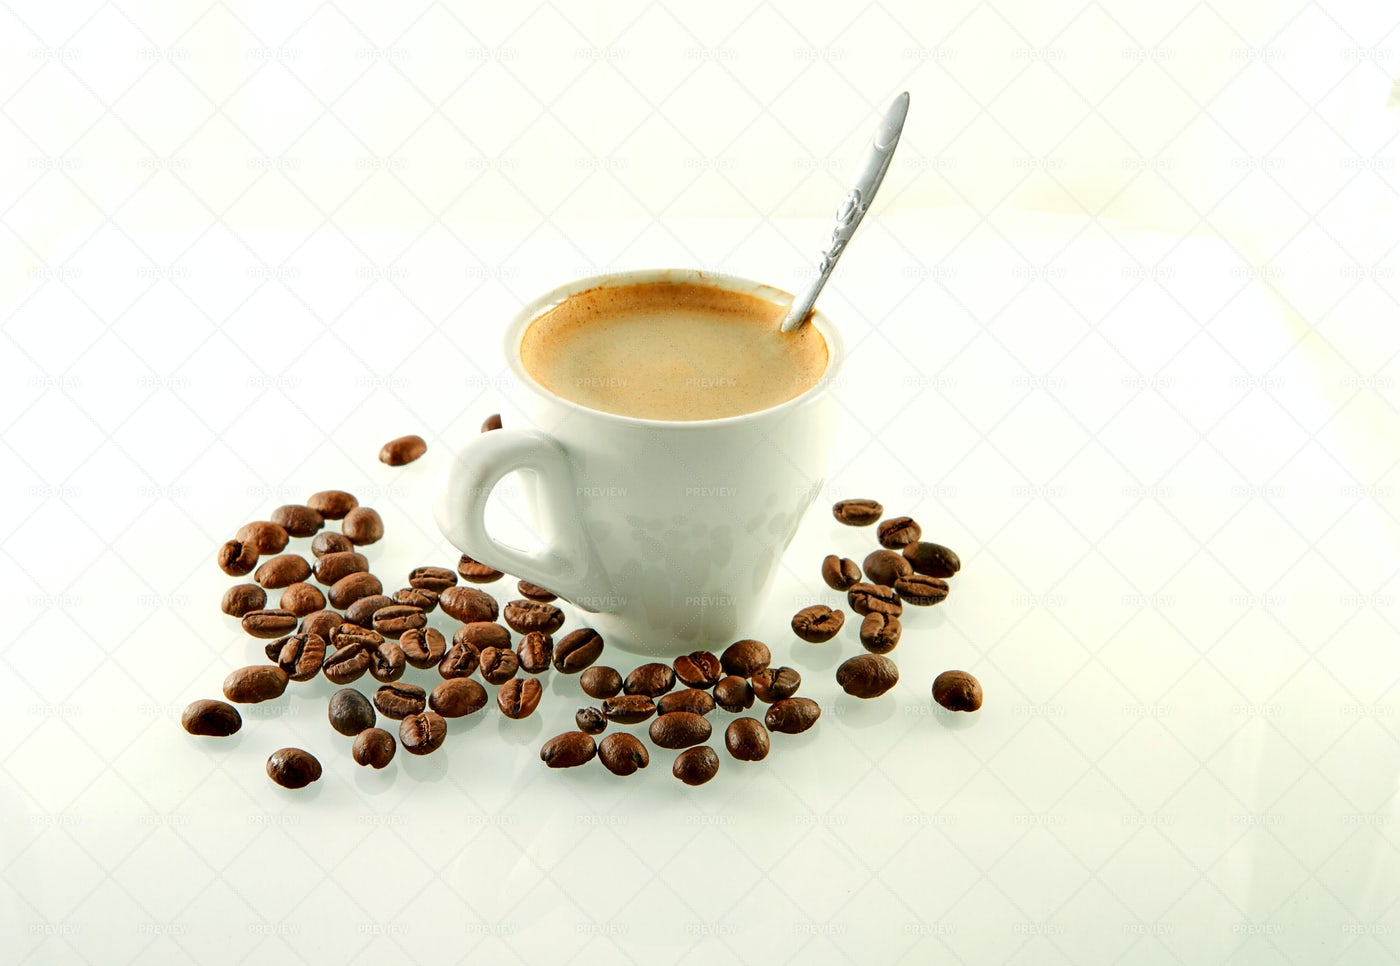 Coffee Cup And Beans: Stock Photos